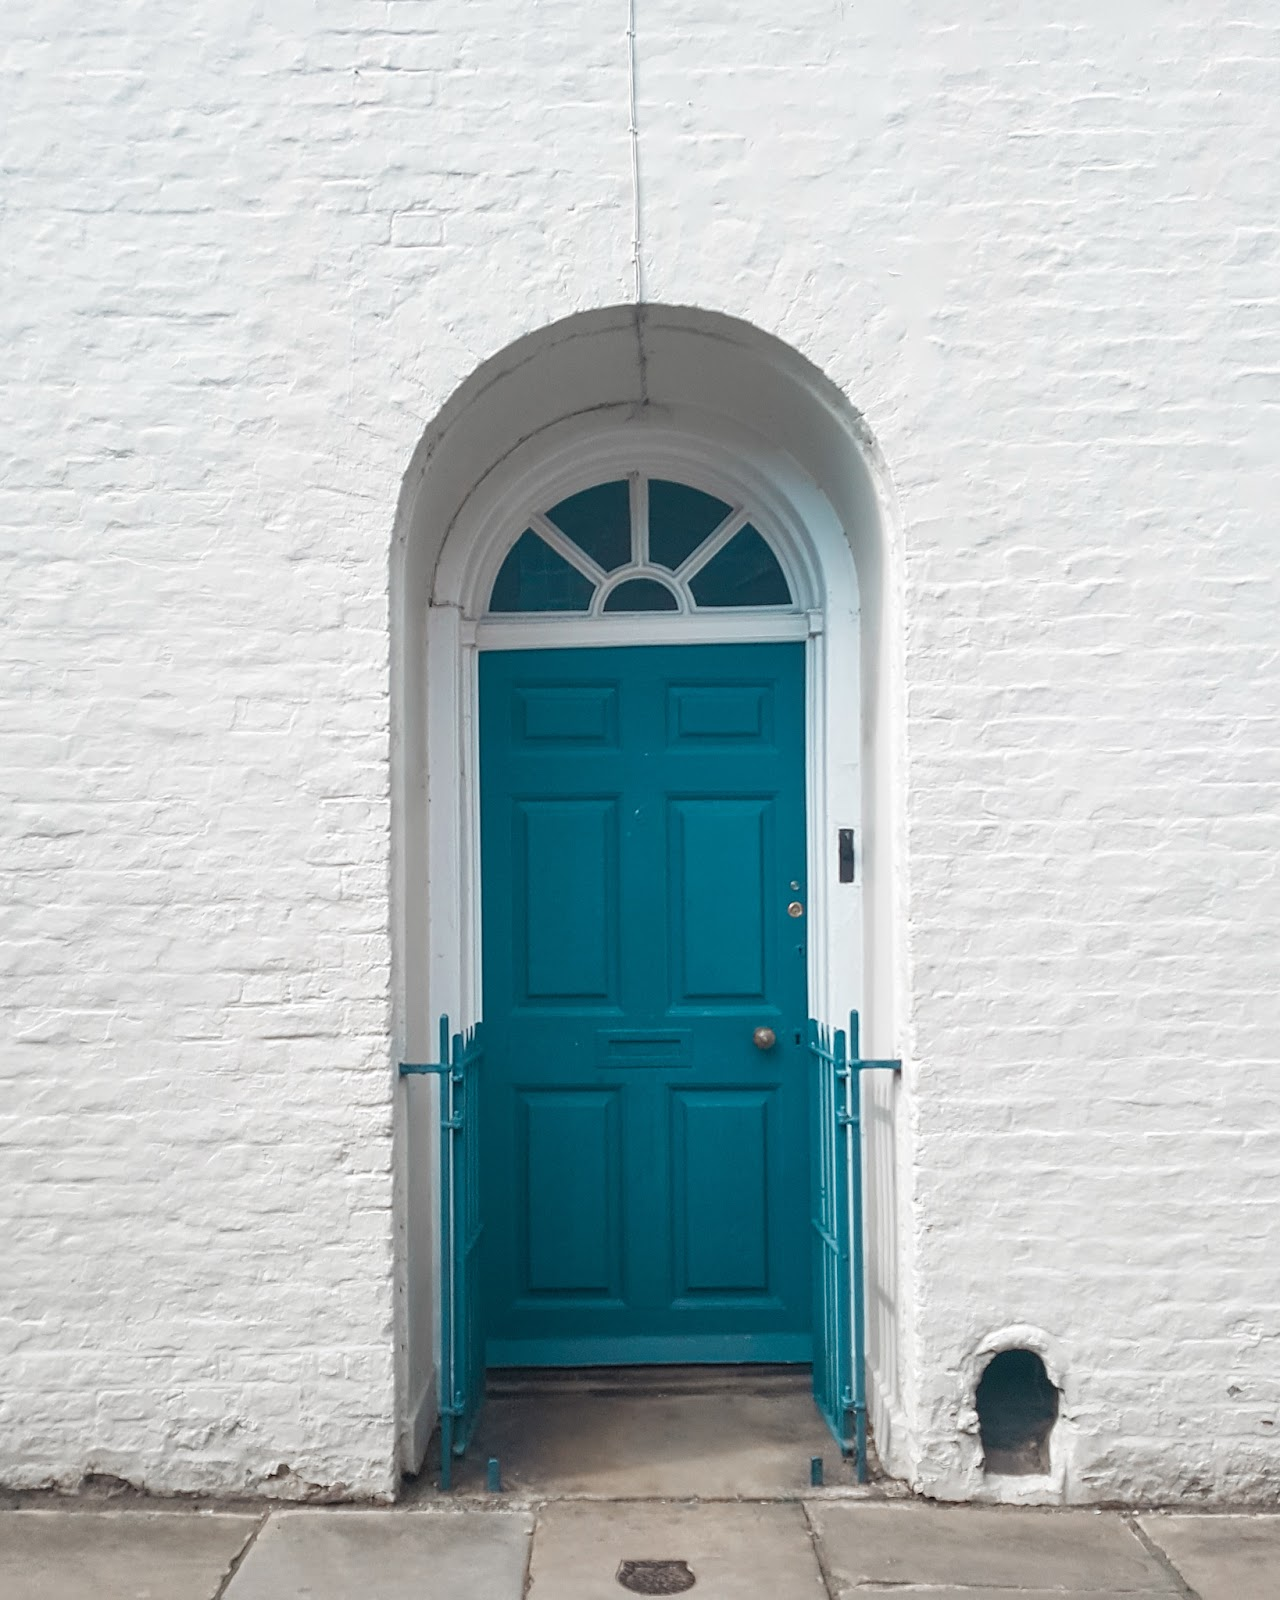 image is of a blue door on a white building, located in York Yorkshire UK